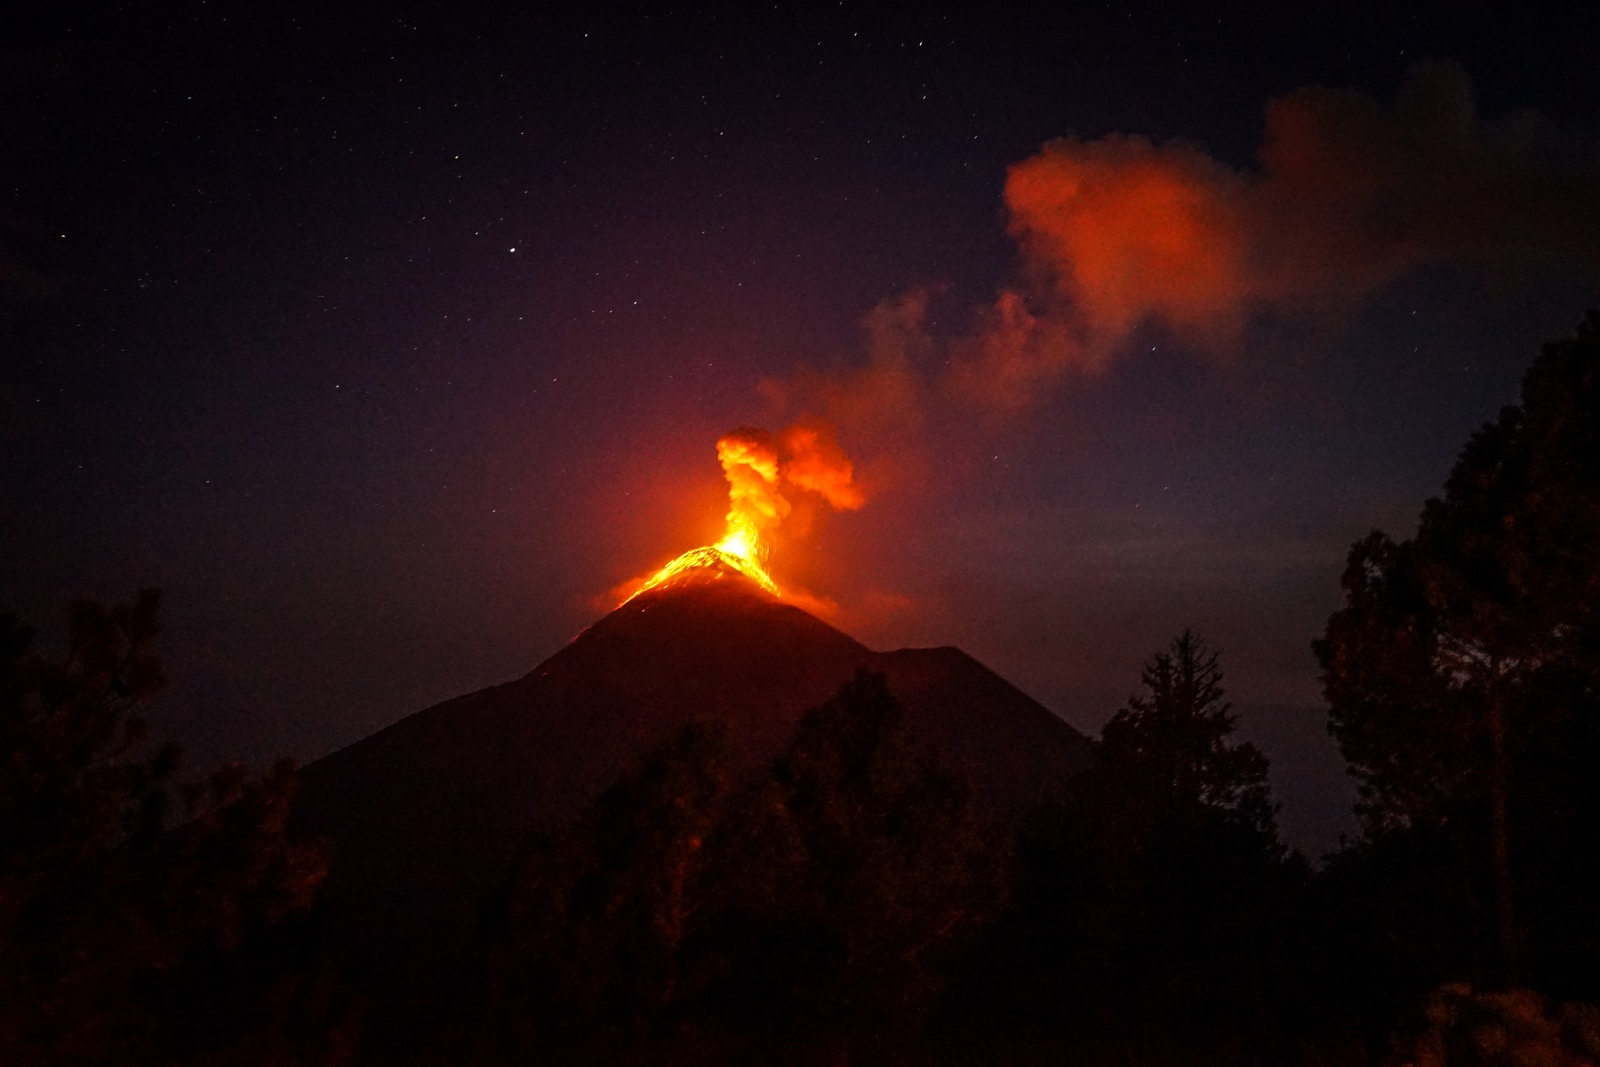 lava coming out from mountain